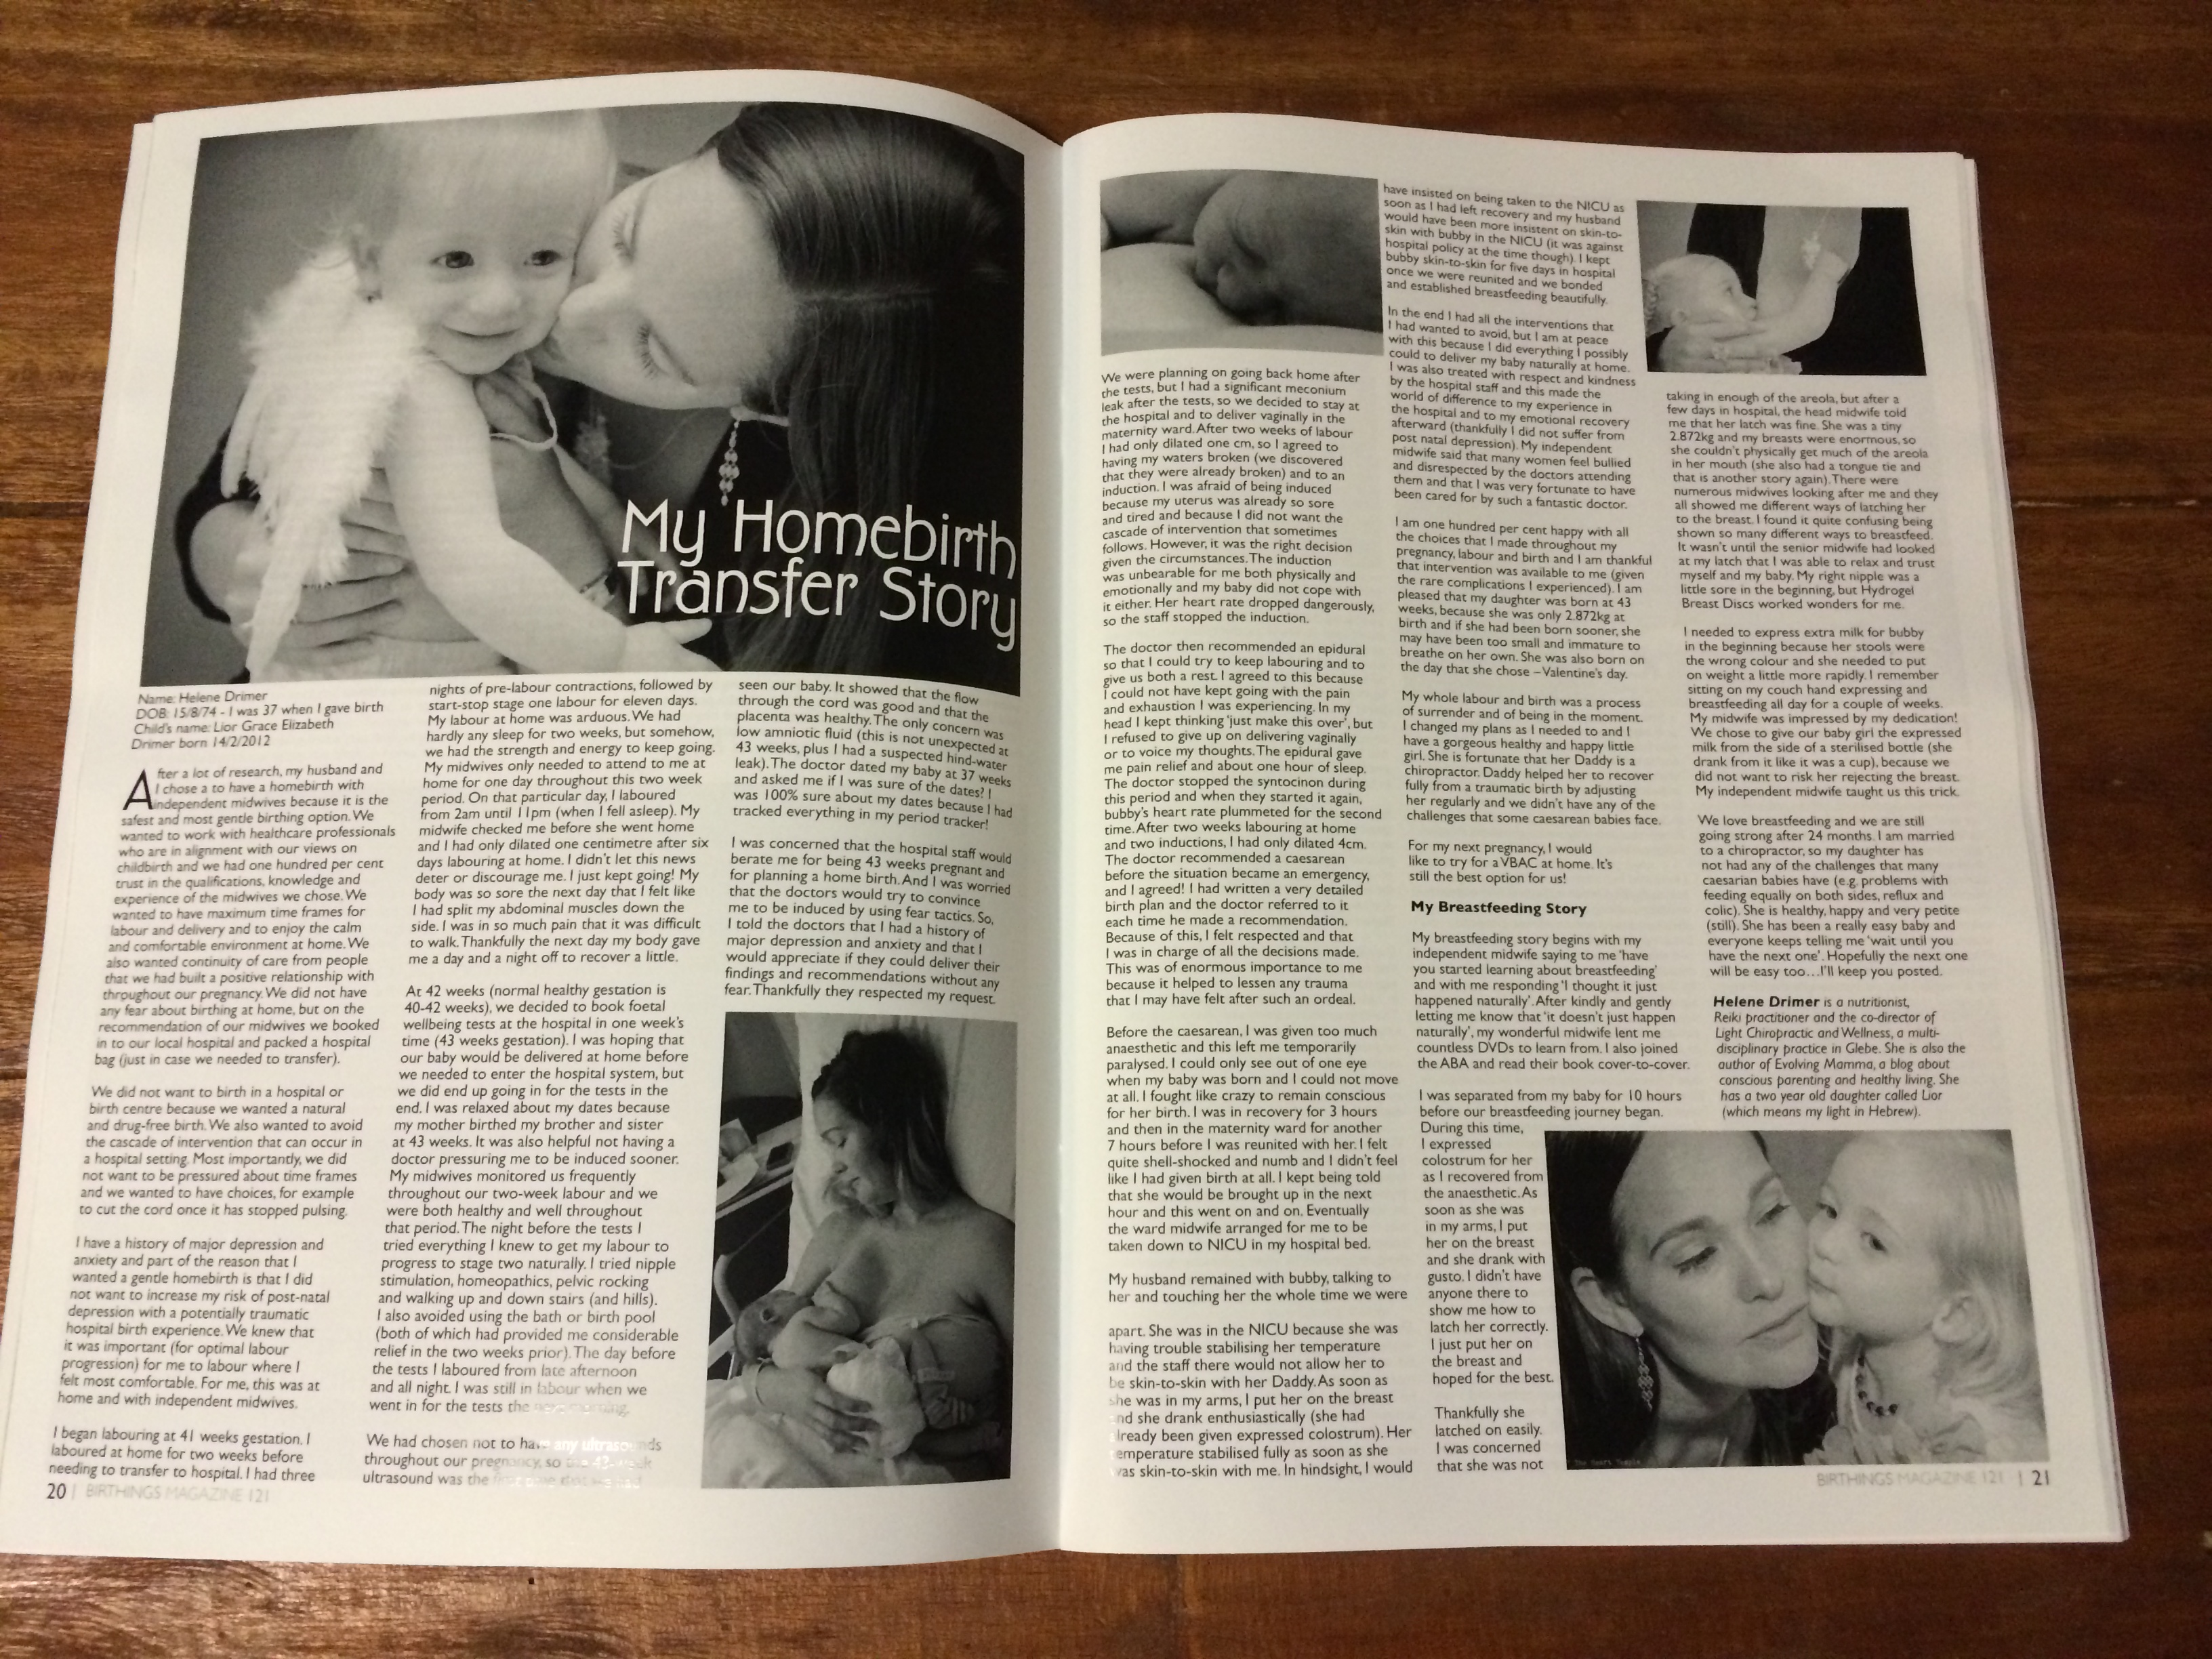 My homebirth transfer story – published in Birthings Magazine